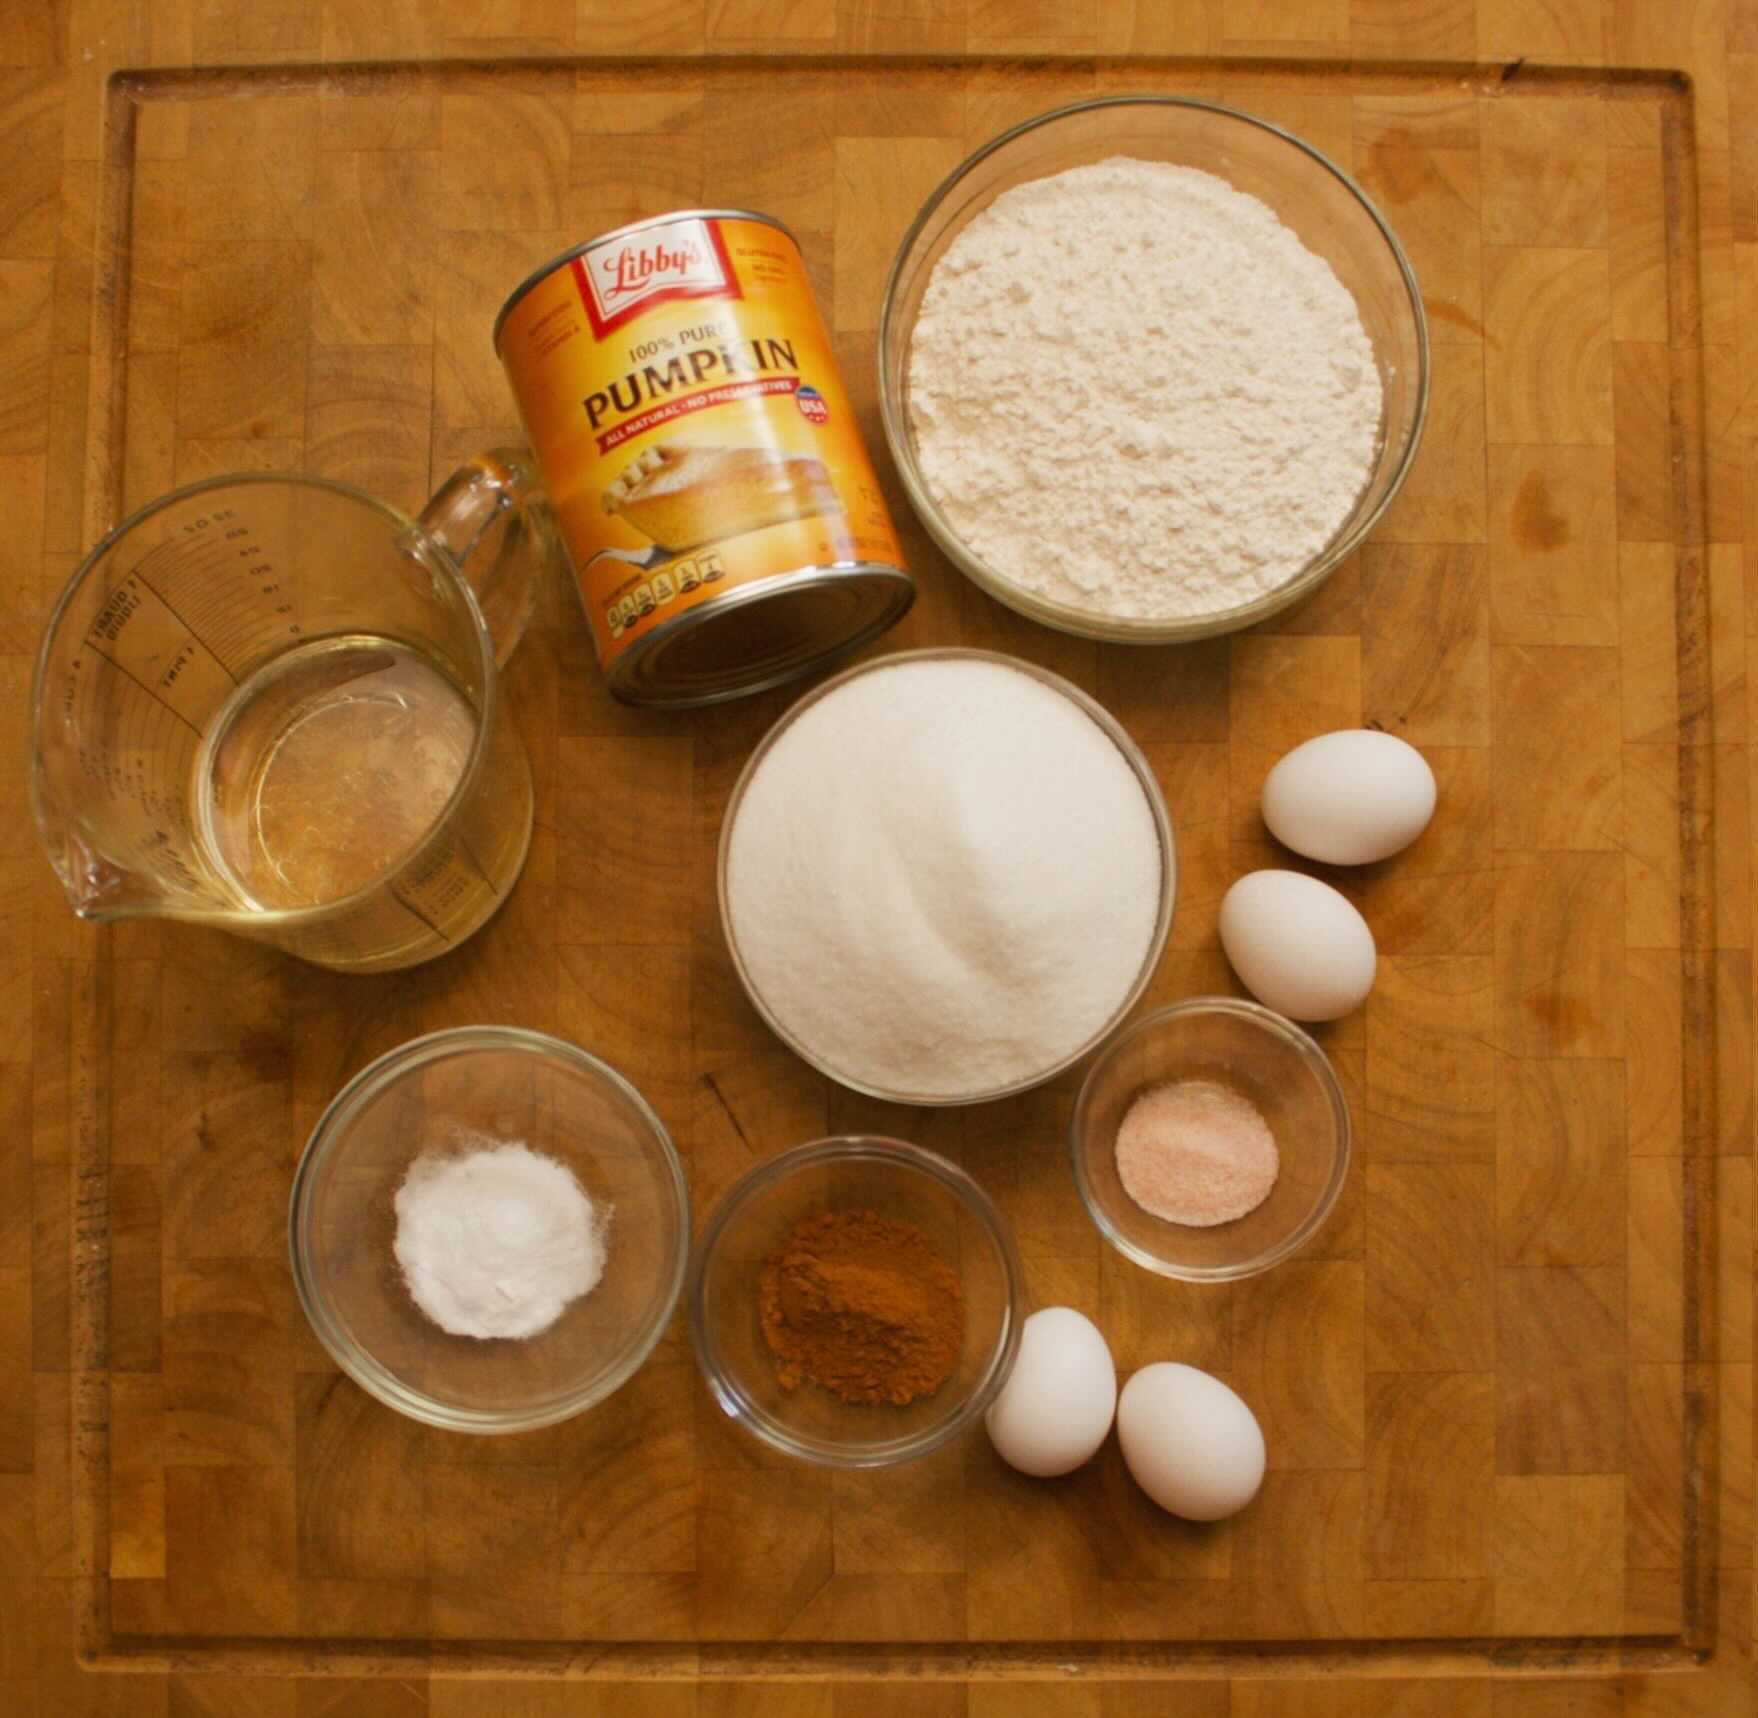 Ingredients for pumpkin bread recipe in a circle on a wooden cutting board.